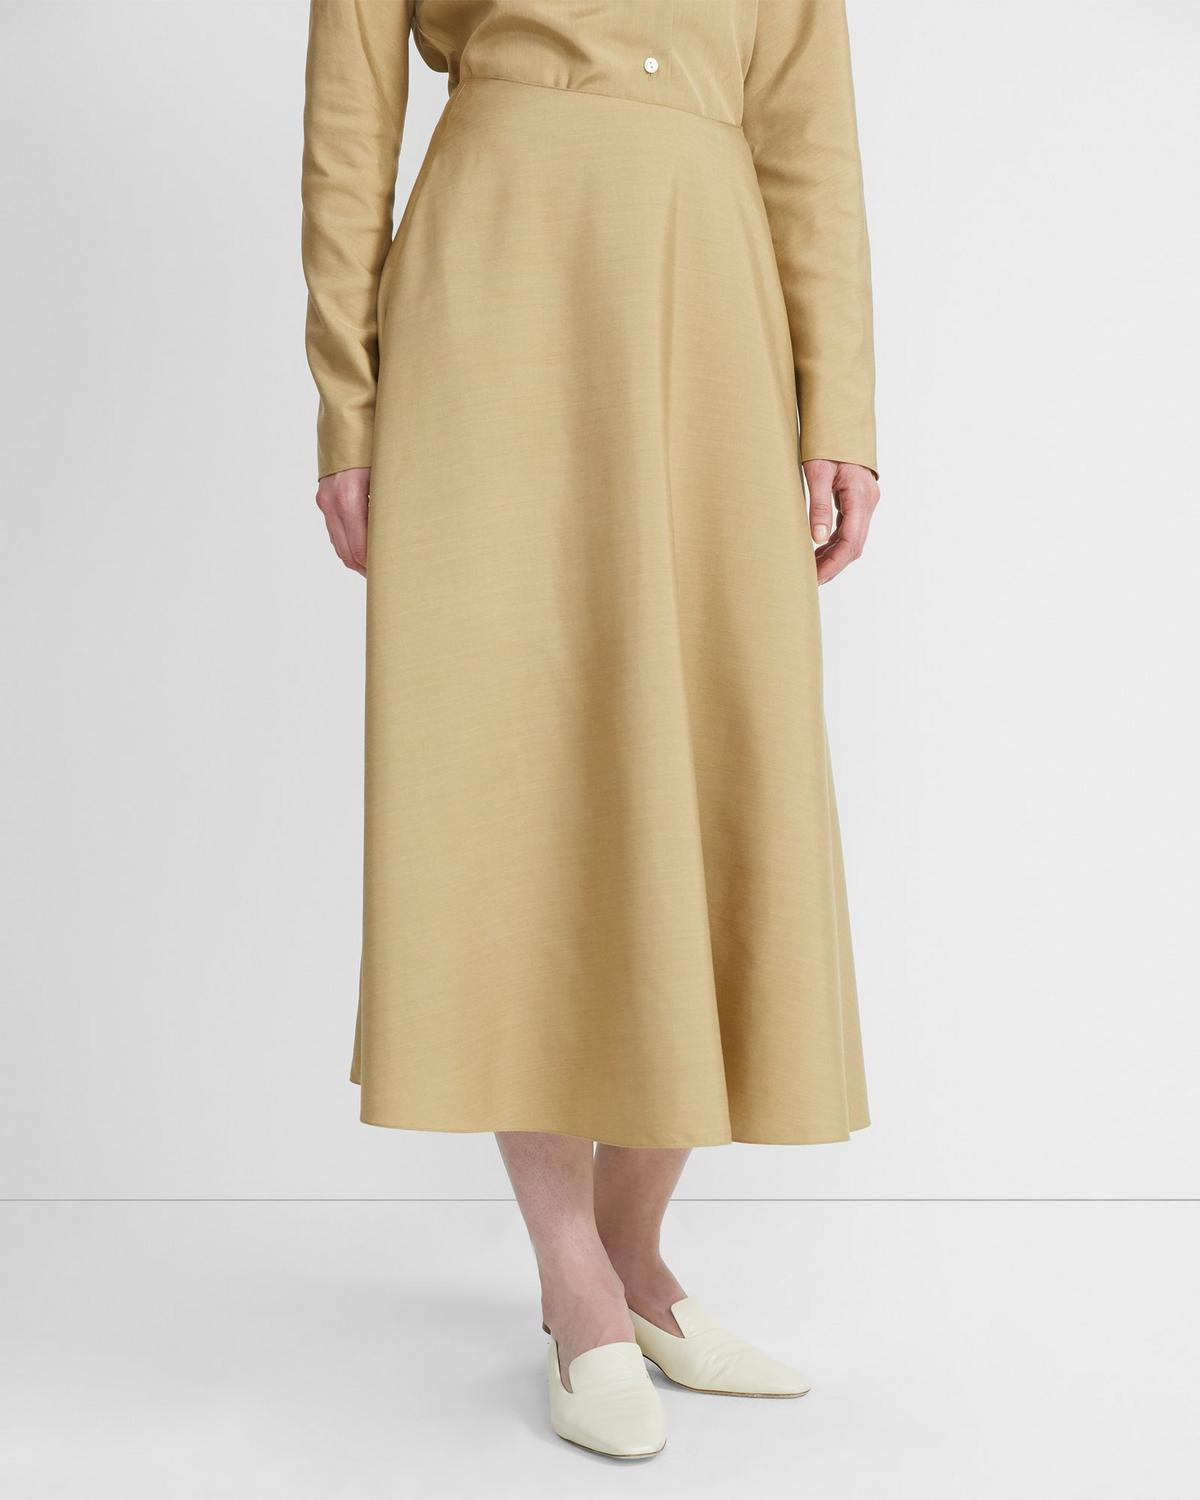 Sanded Silk Volume Skirt